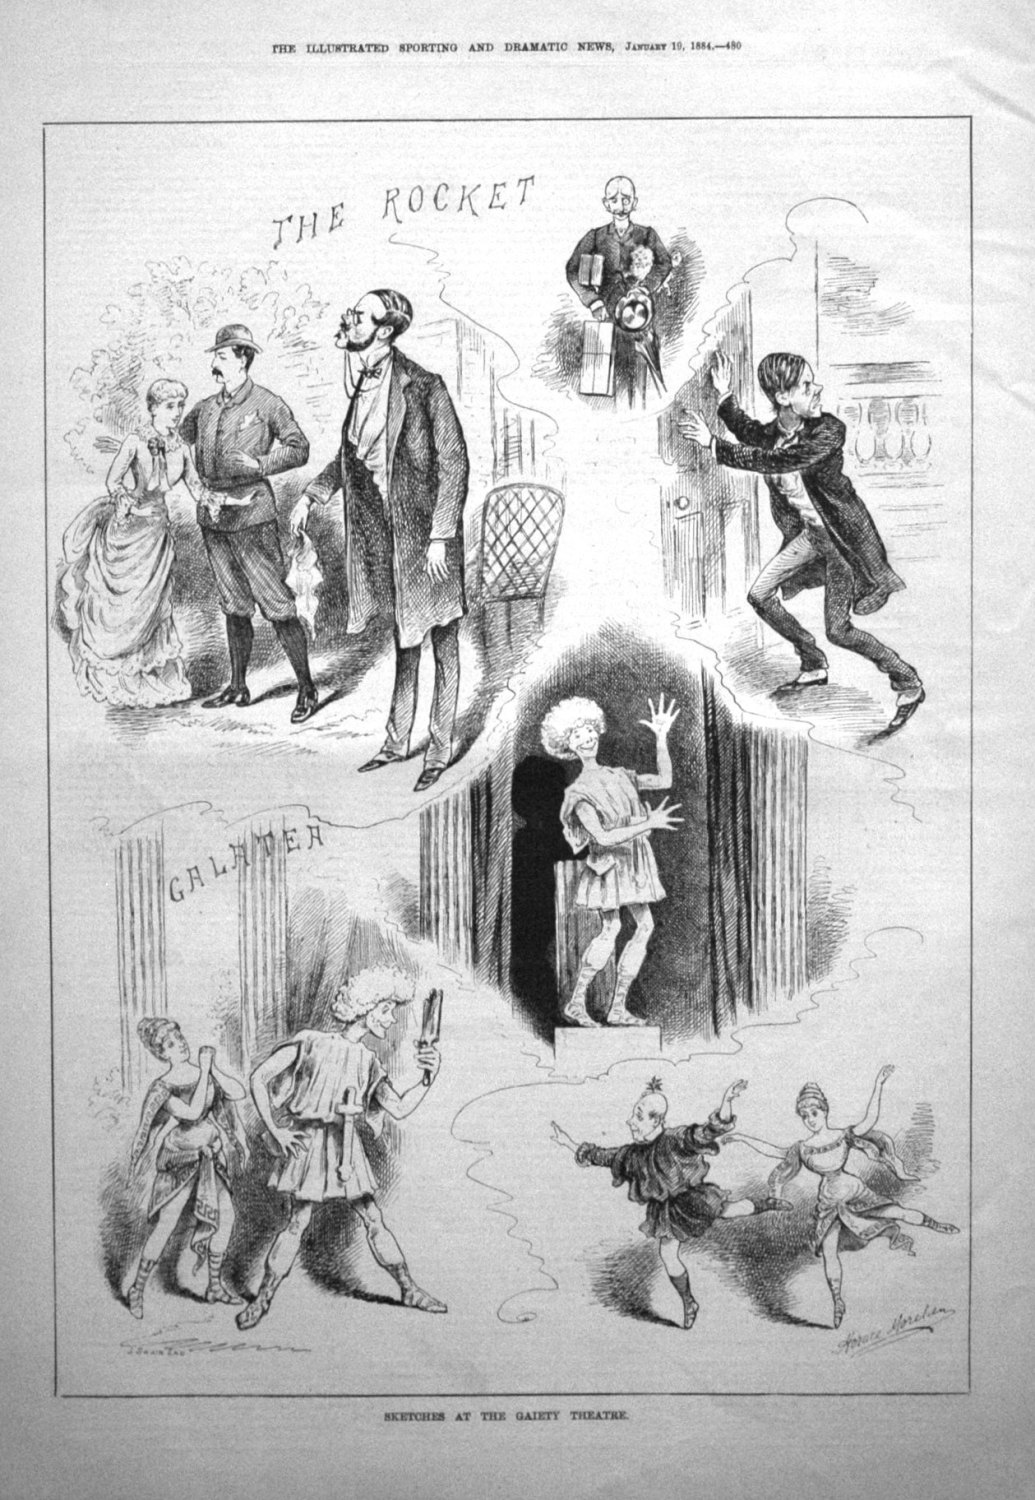 Sketches at the Gaiety Theatre. 1884.